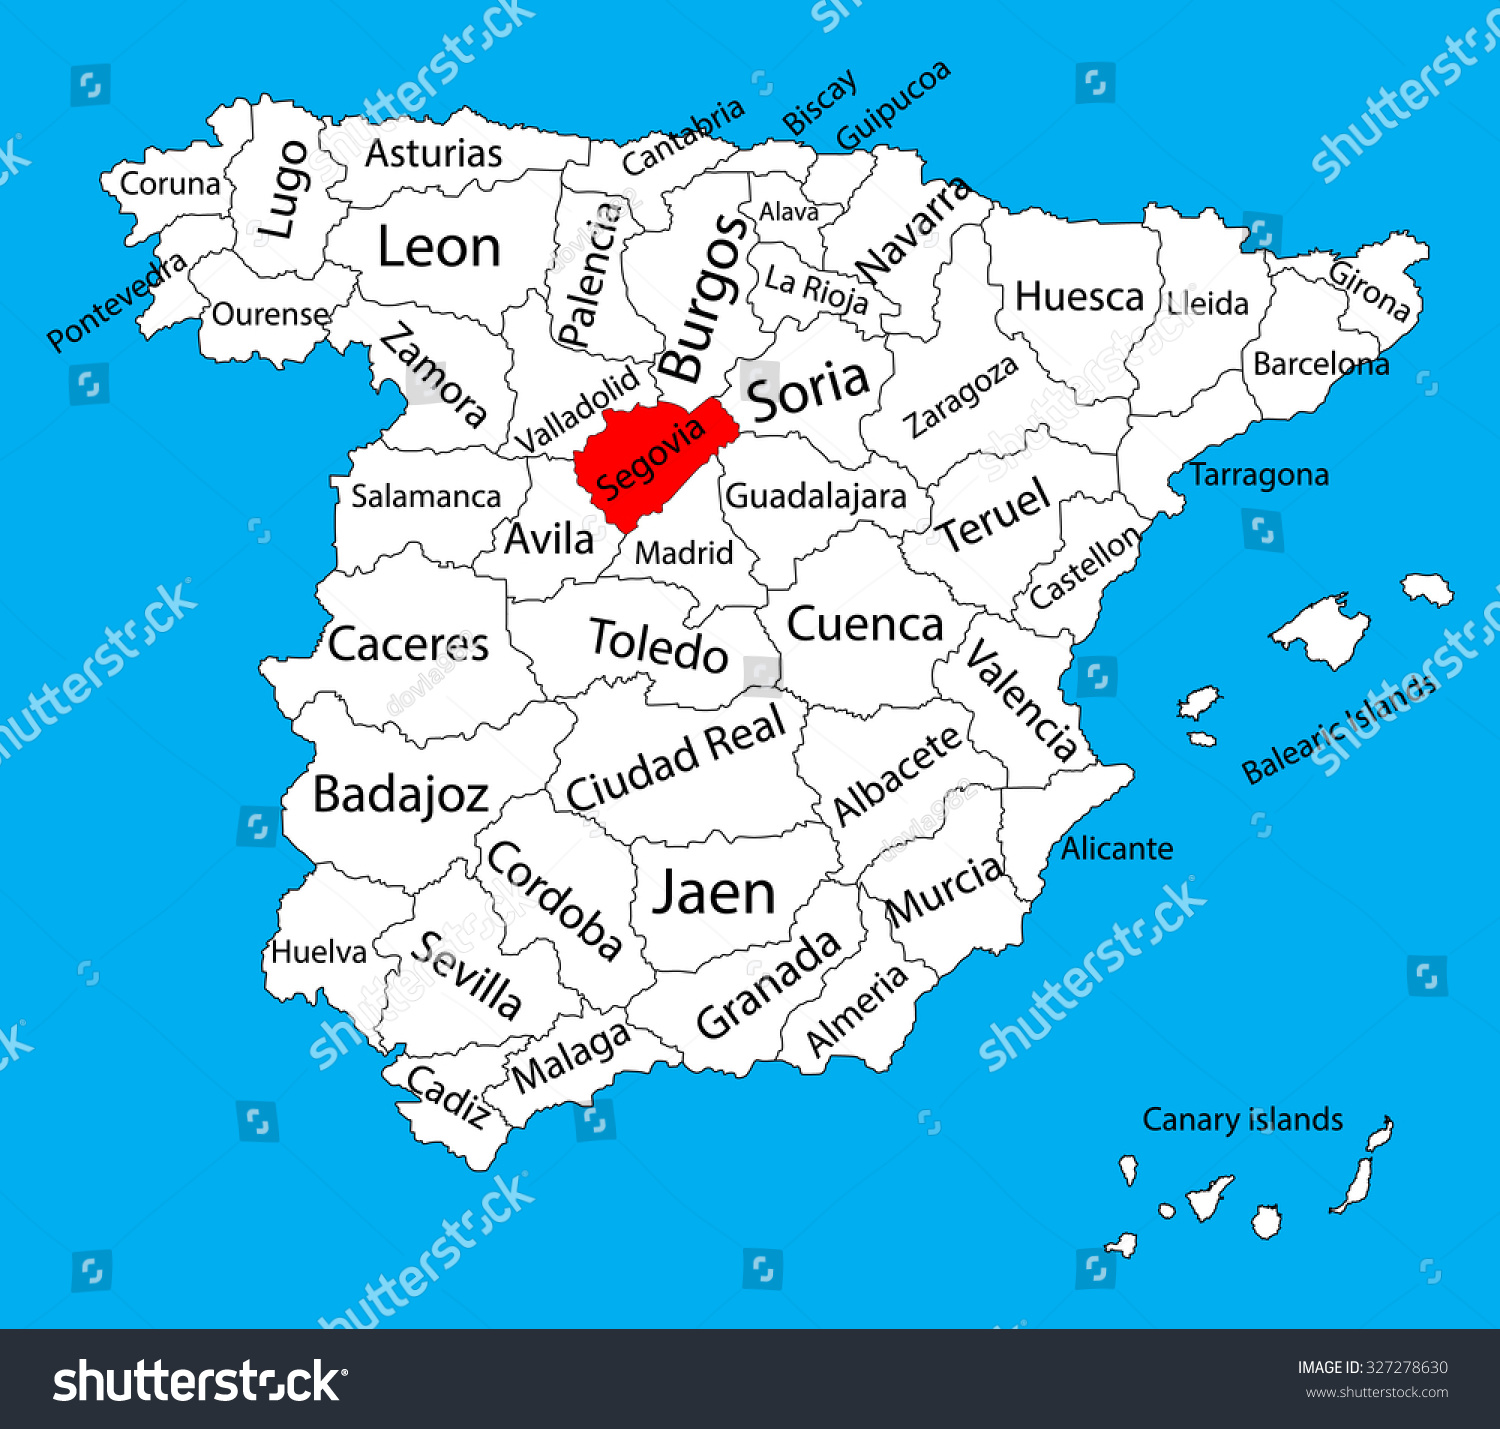 Segovia Spain Map | dijkversterkingbas